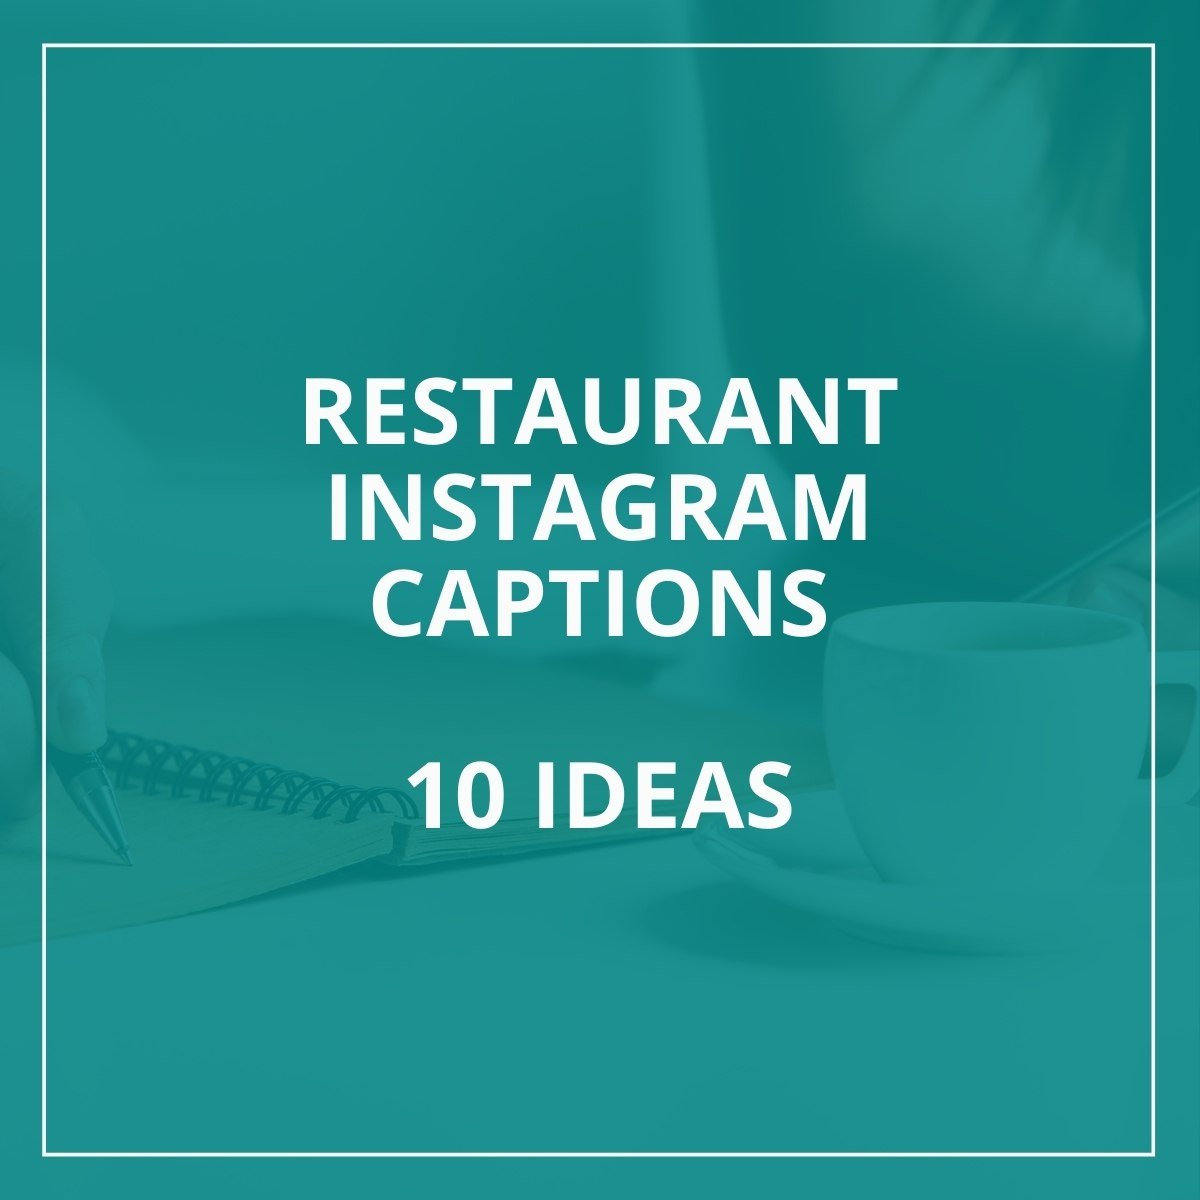 Restaurant Instagram Captions